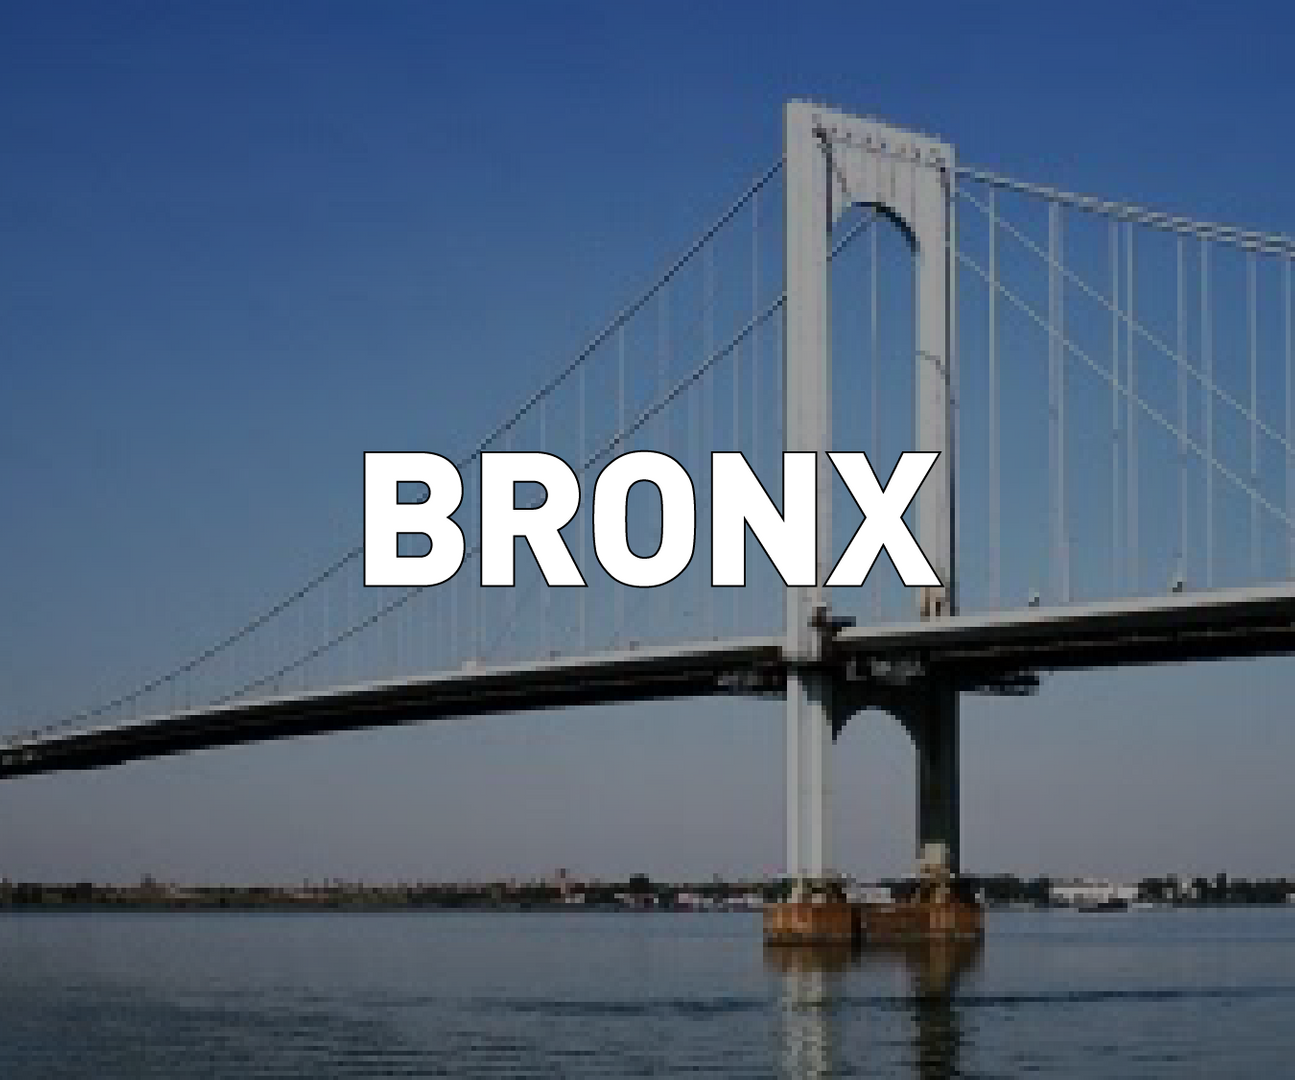 Bronx Bridge